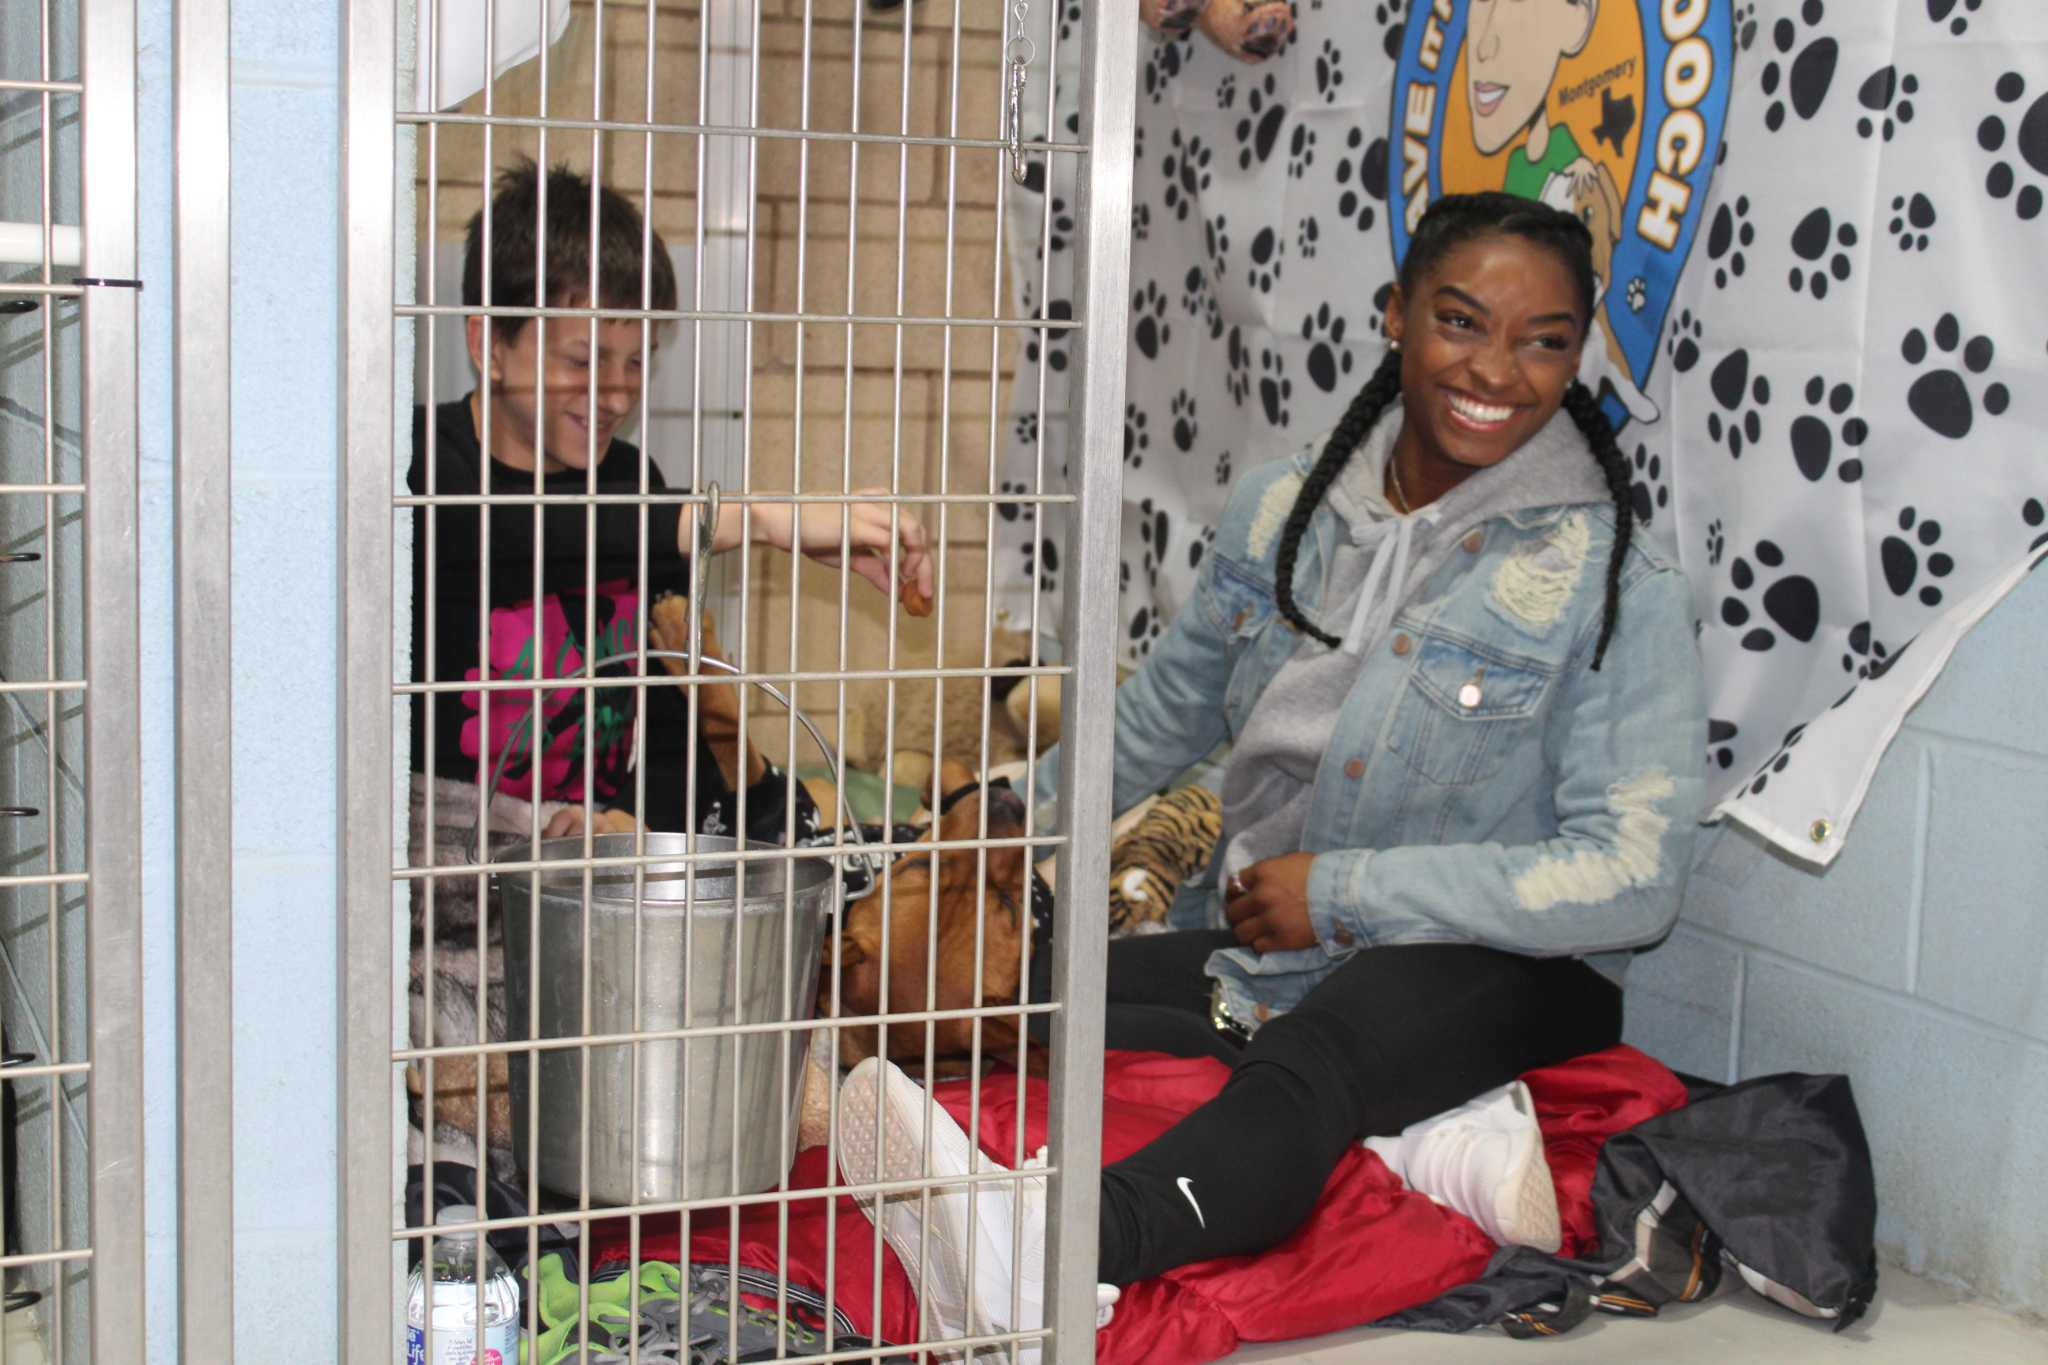 Simone Biles shows support at animal shelter fundraiser